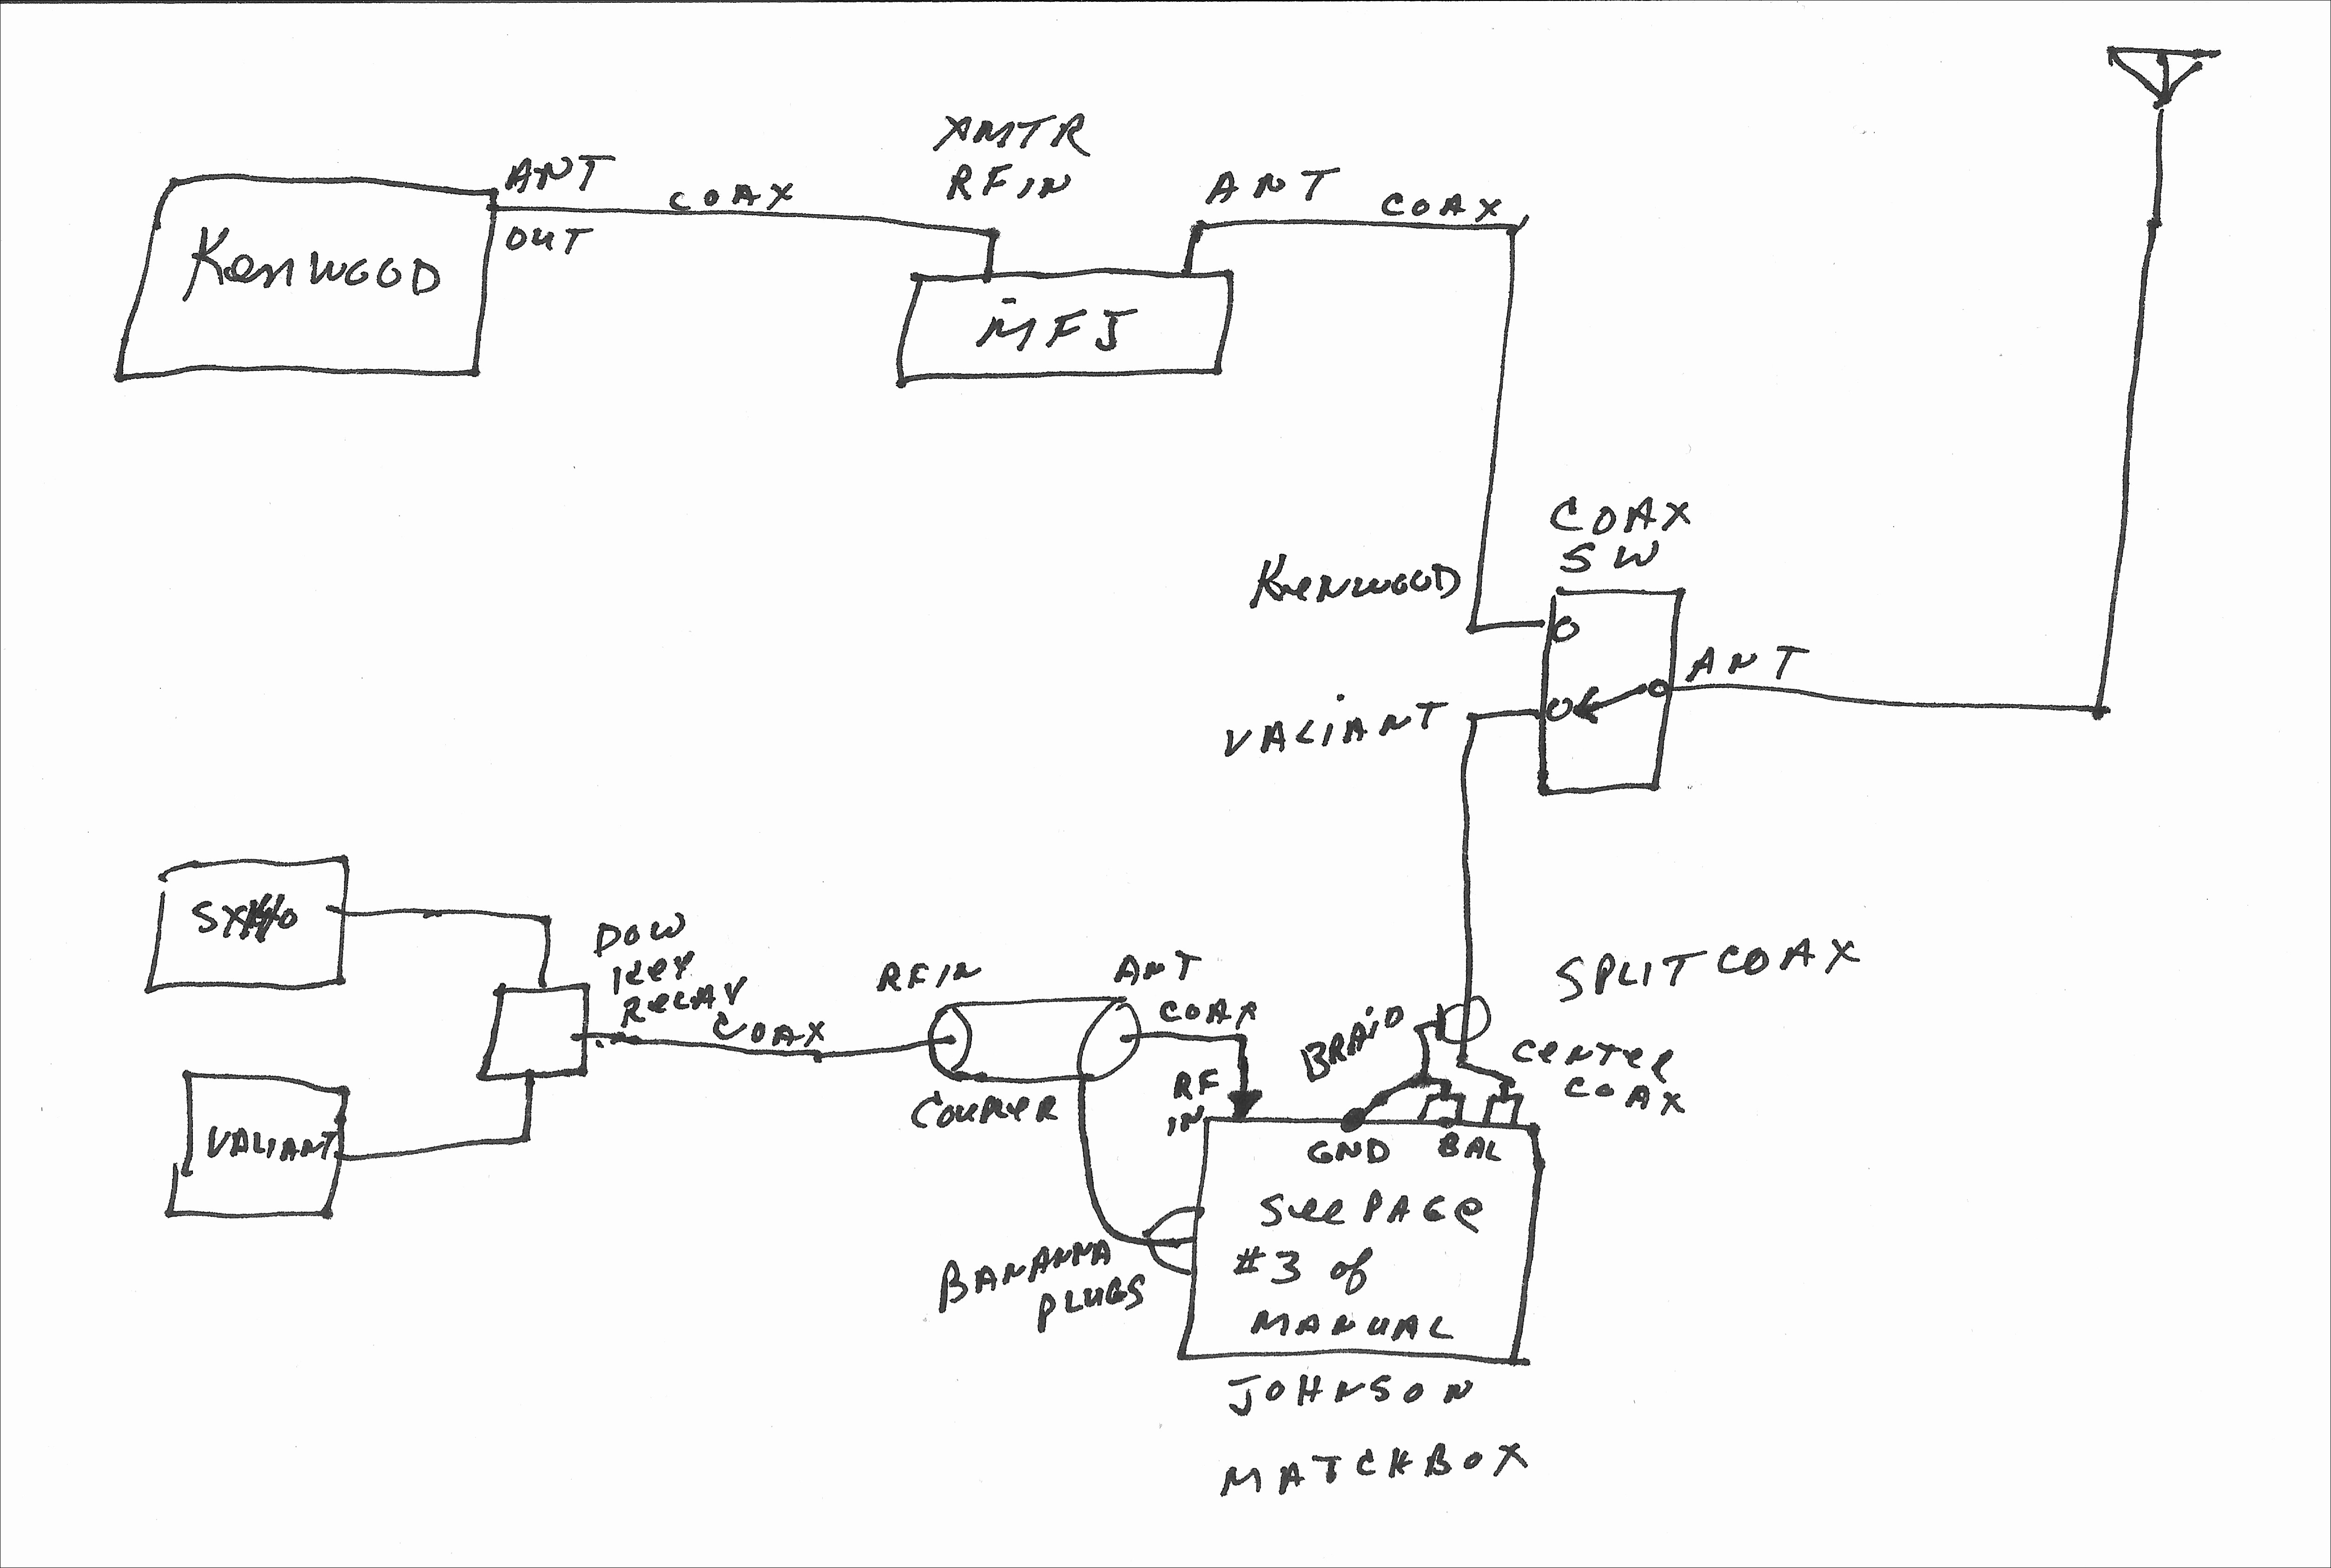 Cb Mic Schematic | Wiring Diagram - Microphone Wiring Diagram